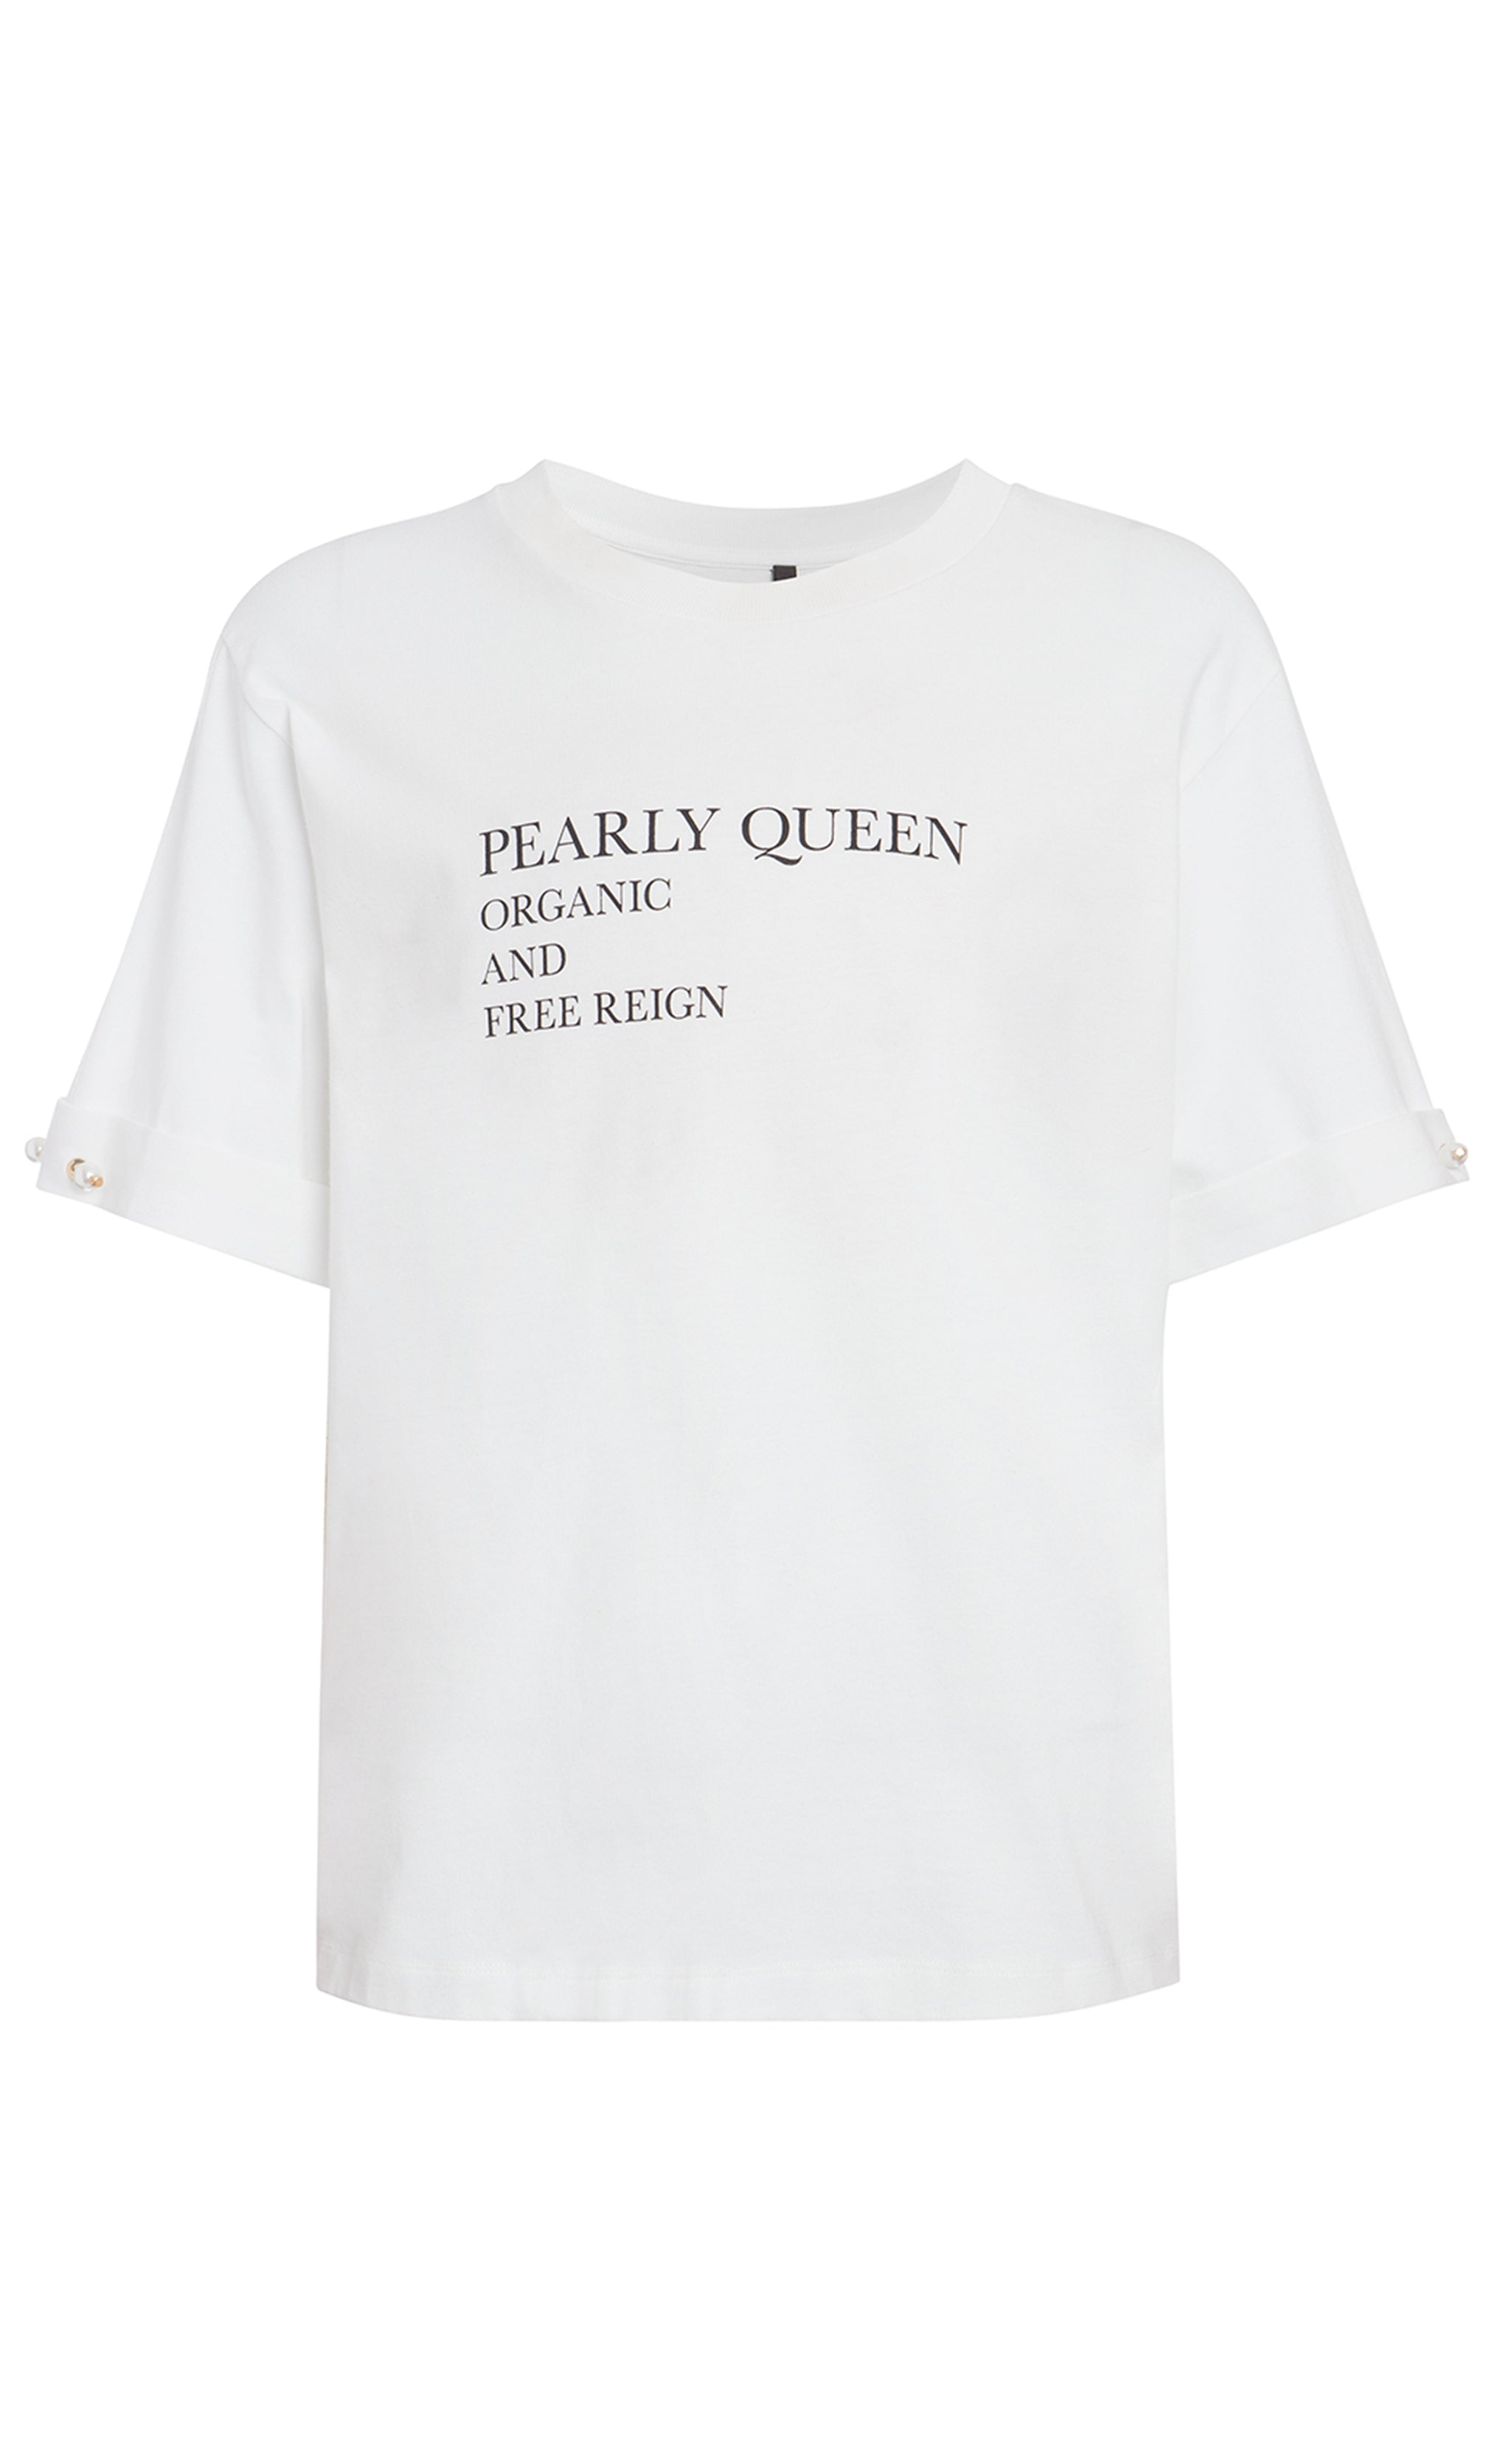 CHARLIE PEARLY QUEEN T-SHIRT